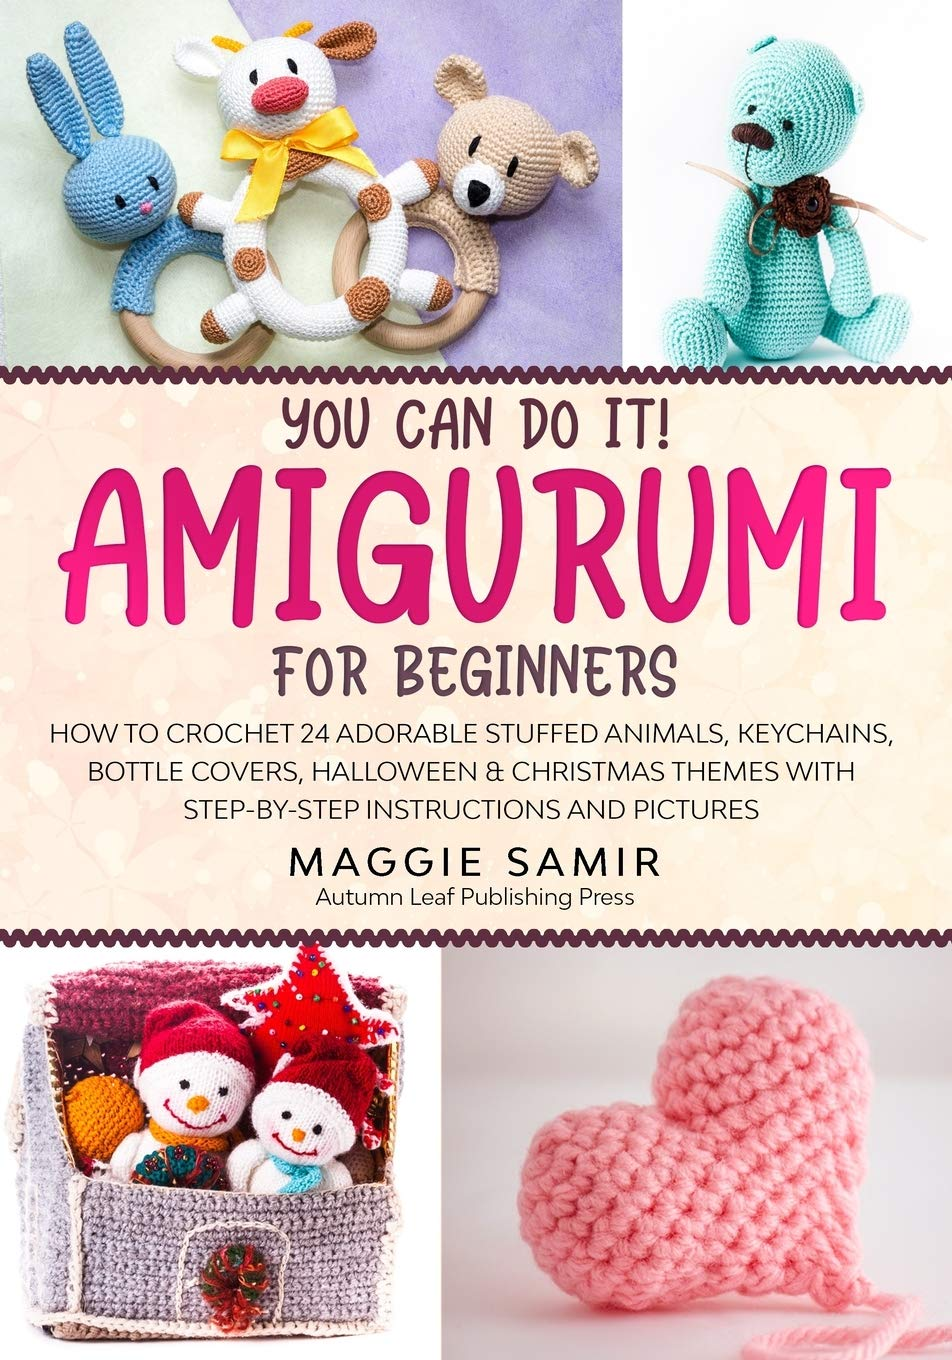 You Can Do It! Amigurumi for Beginners: How to Crochet 24 Adorable Stuffed Animals, Keychains, Bottle Covers, Halloween & Christmas Themes with Step-By-Step Instructions and Pictures: Amazon.es: Samir, Maggie: Libros en idiomas